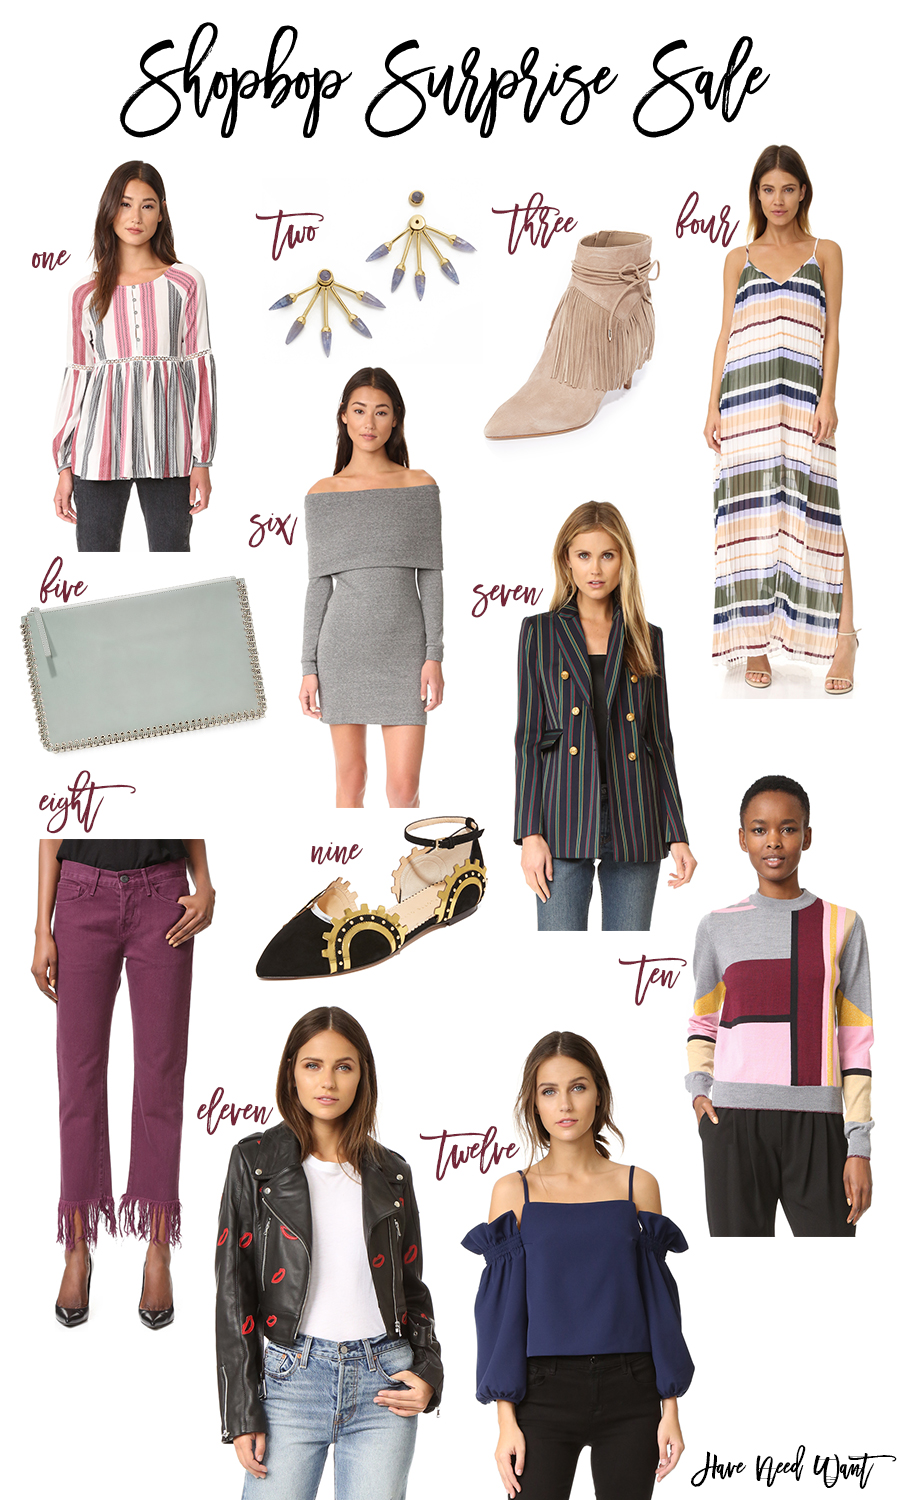 shopbop-surprise-sale-pinterest